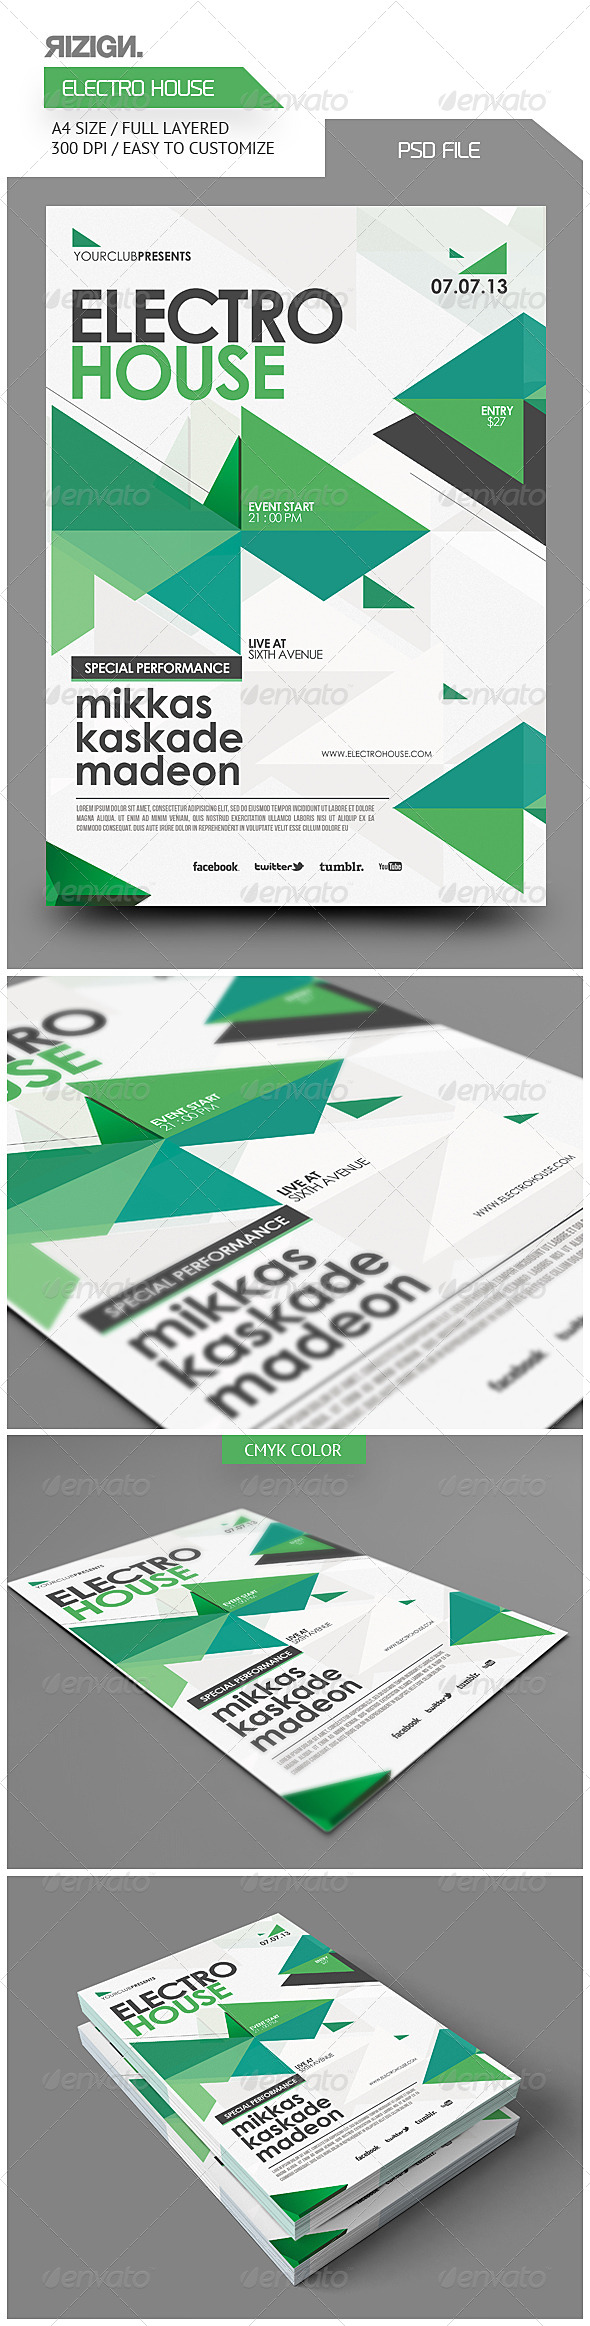 GraphicRiver Electro House Flyer 5816702